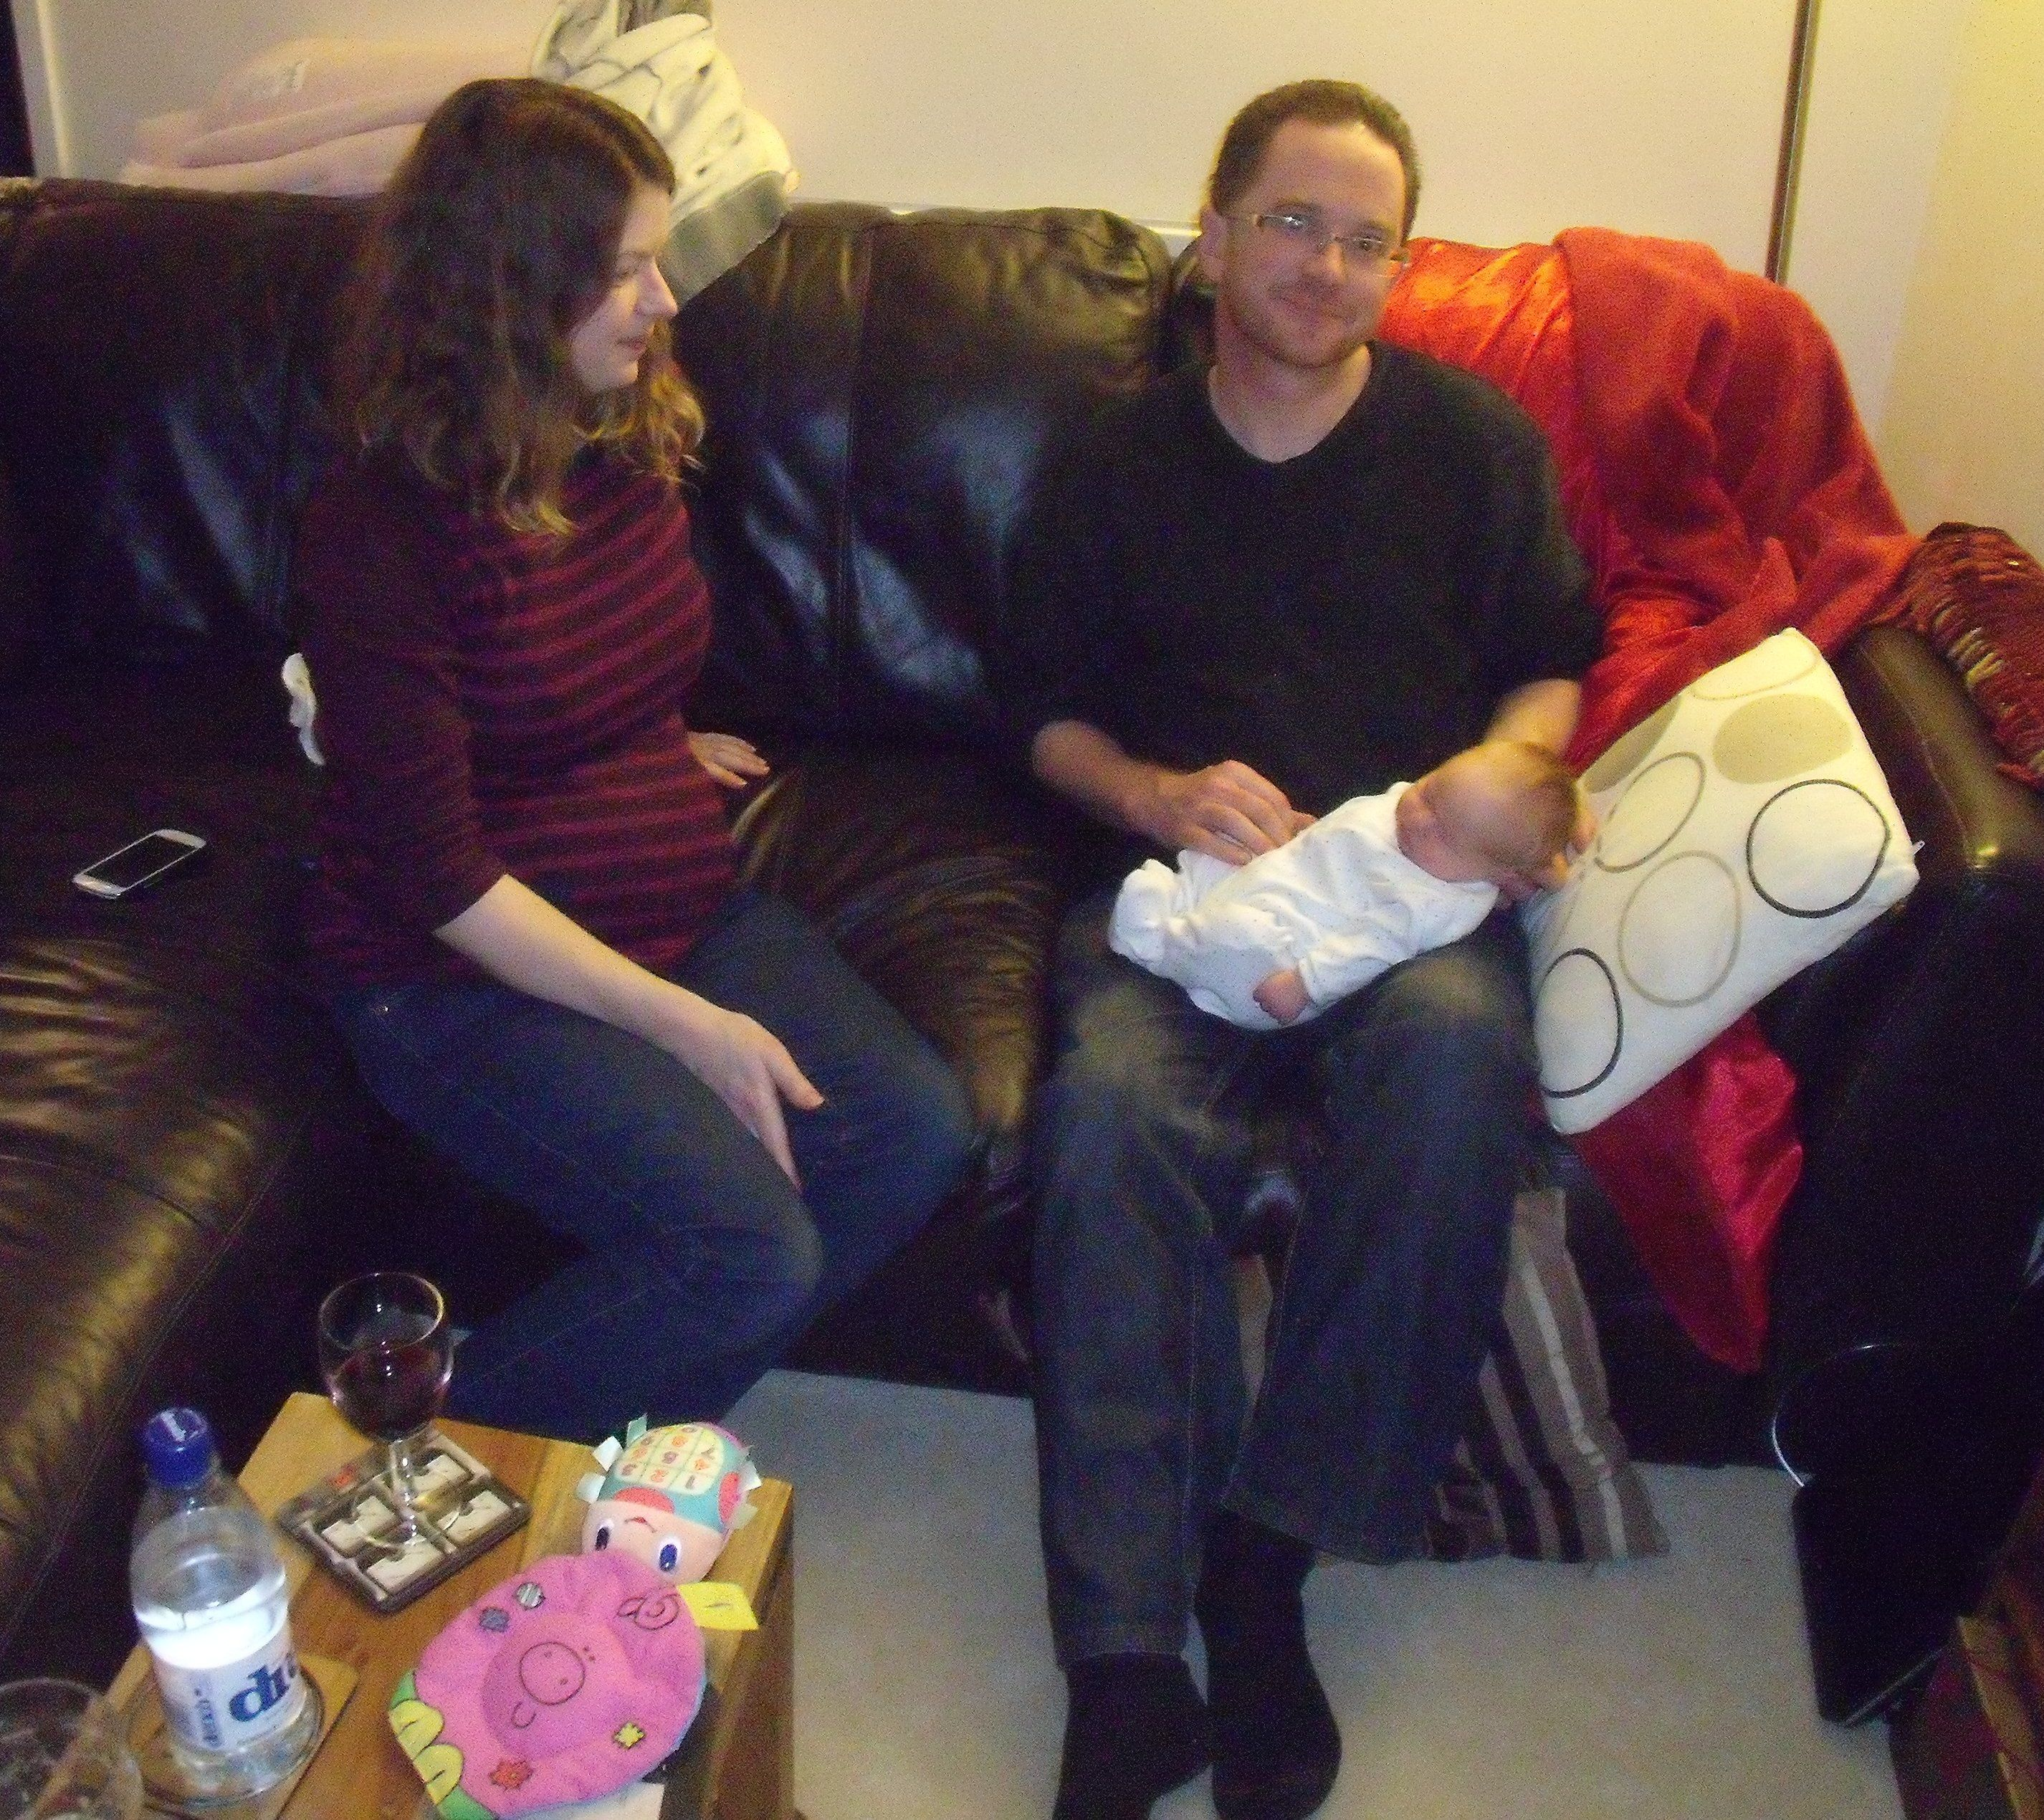 Me, my sister and my new niece. :-)